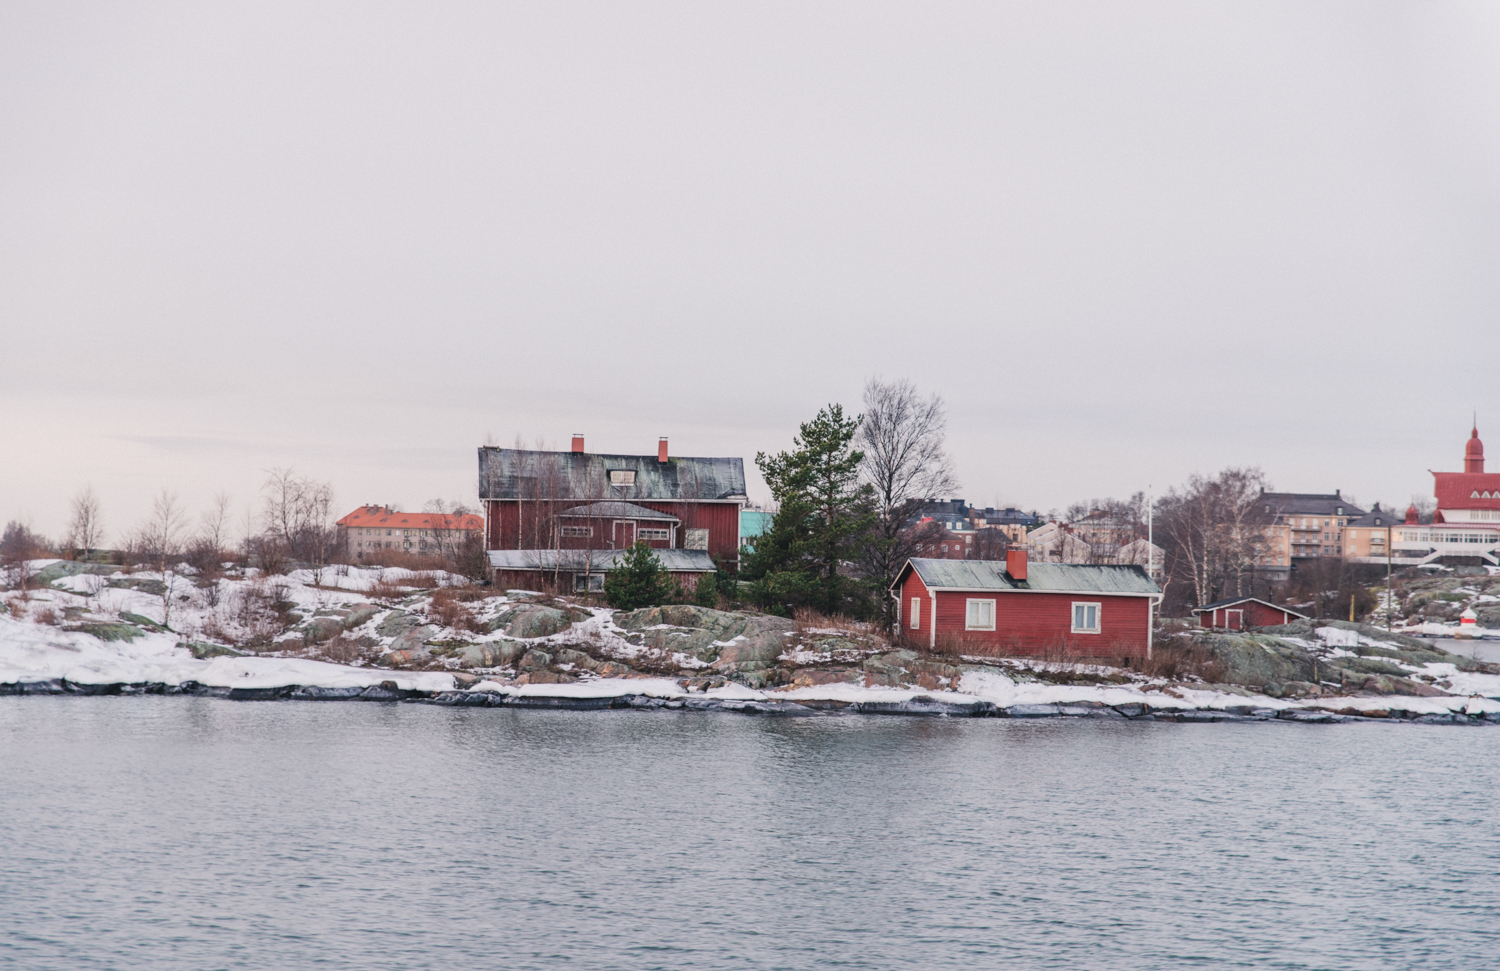 View from Ferry ride to Suomenlinna Sea Fortress